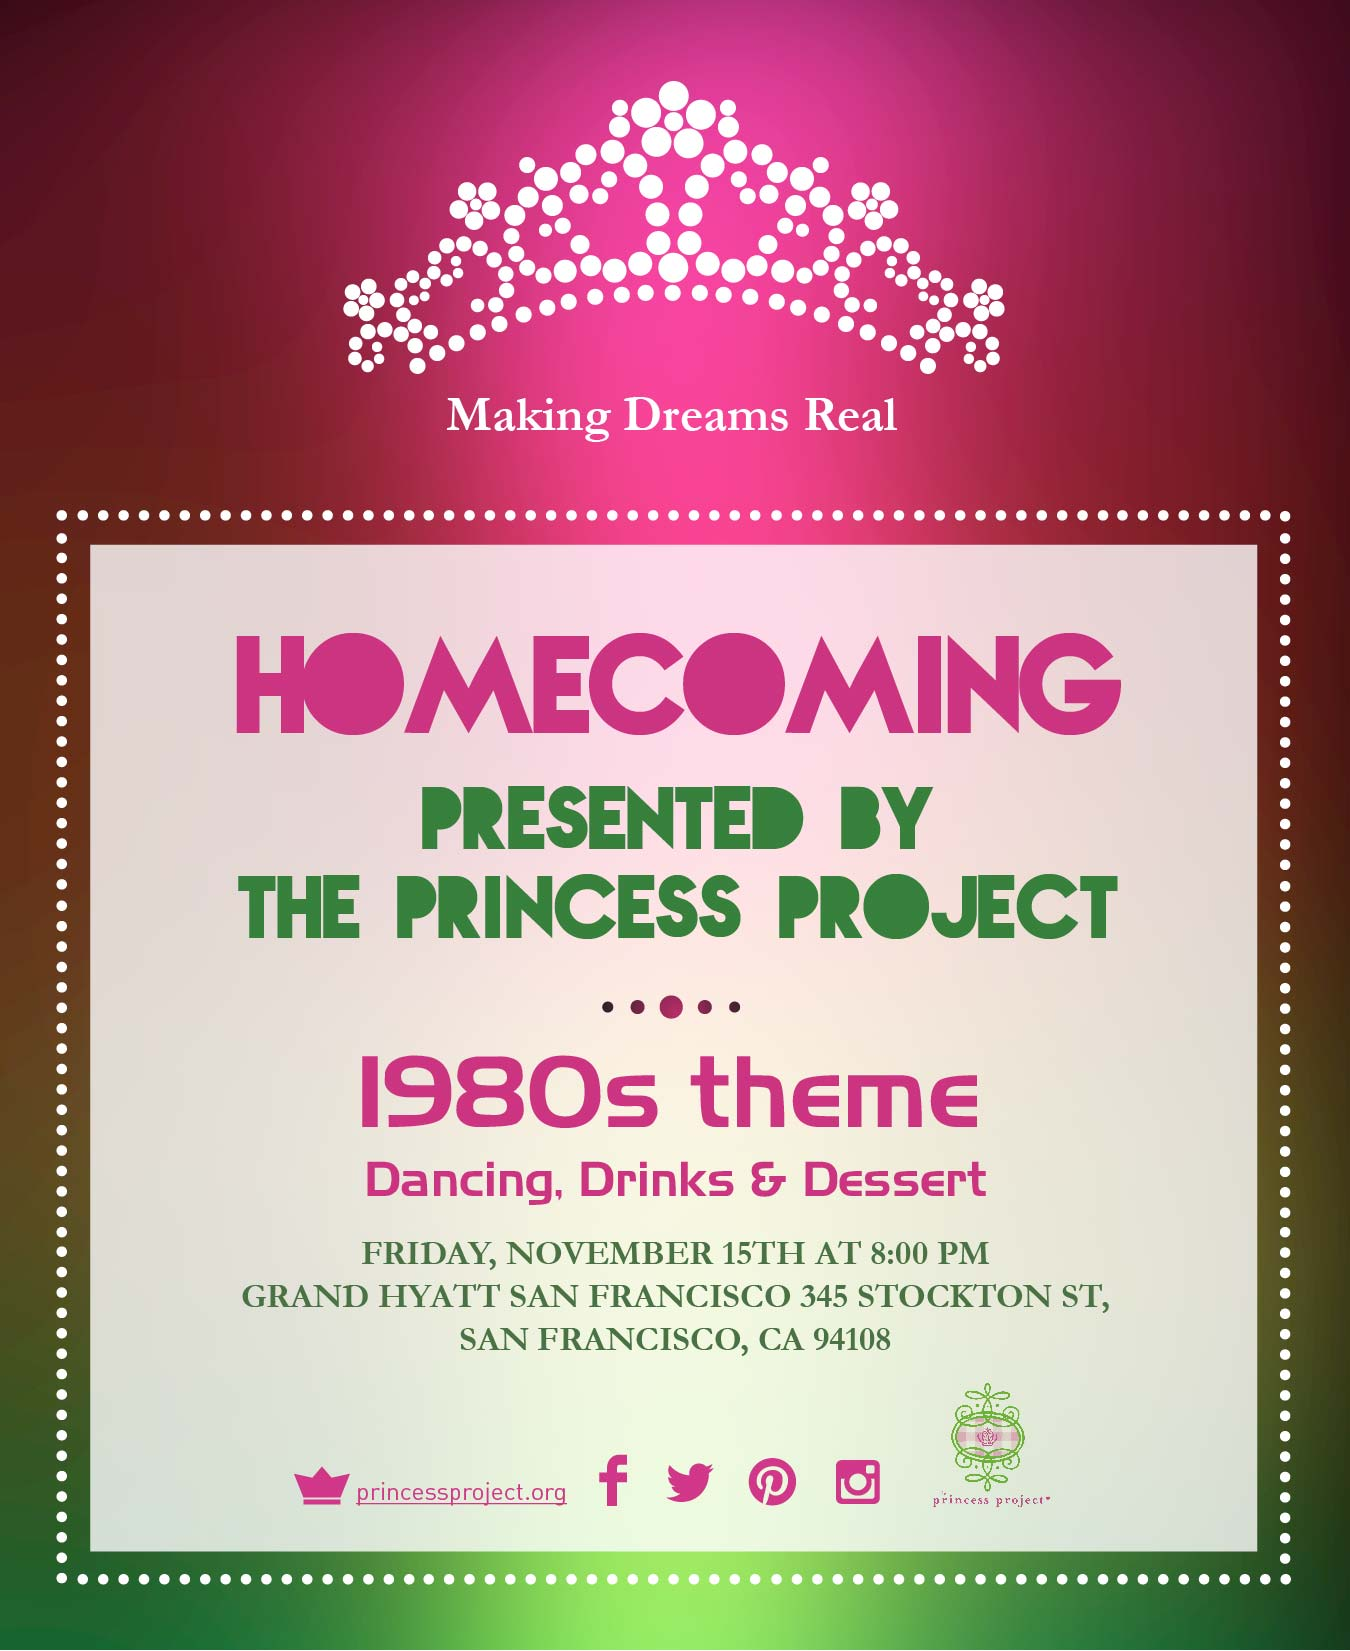 The Princess Project Homecoming Flyer